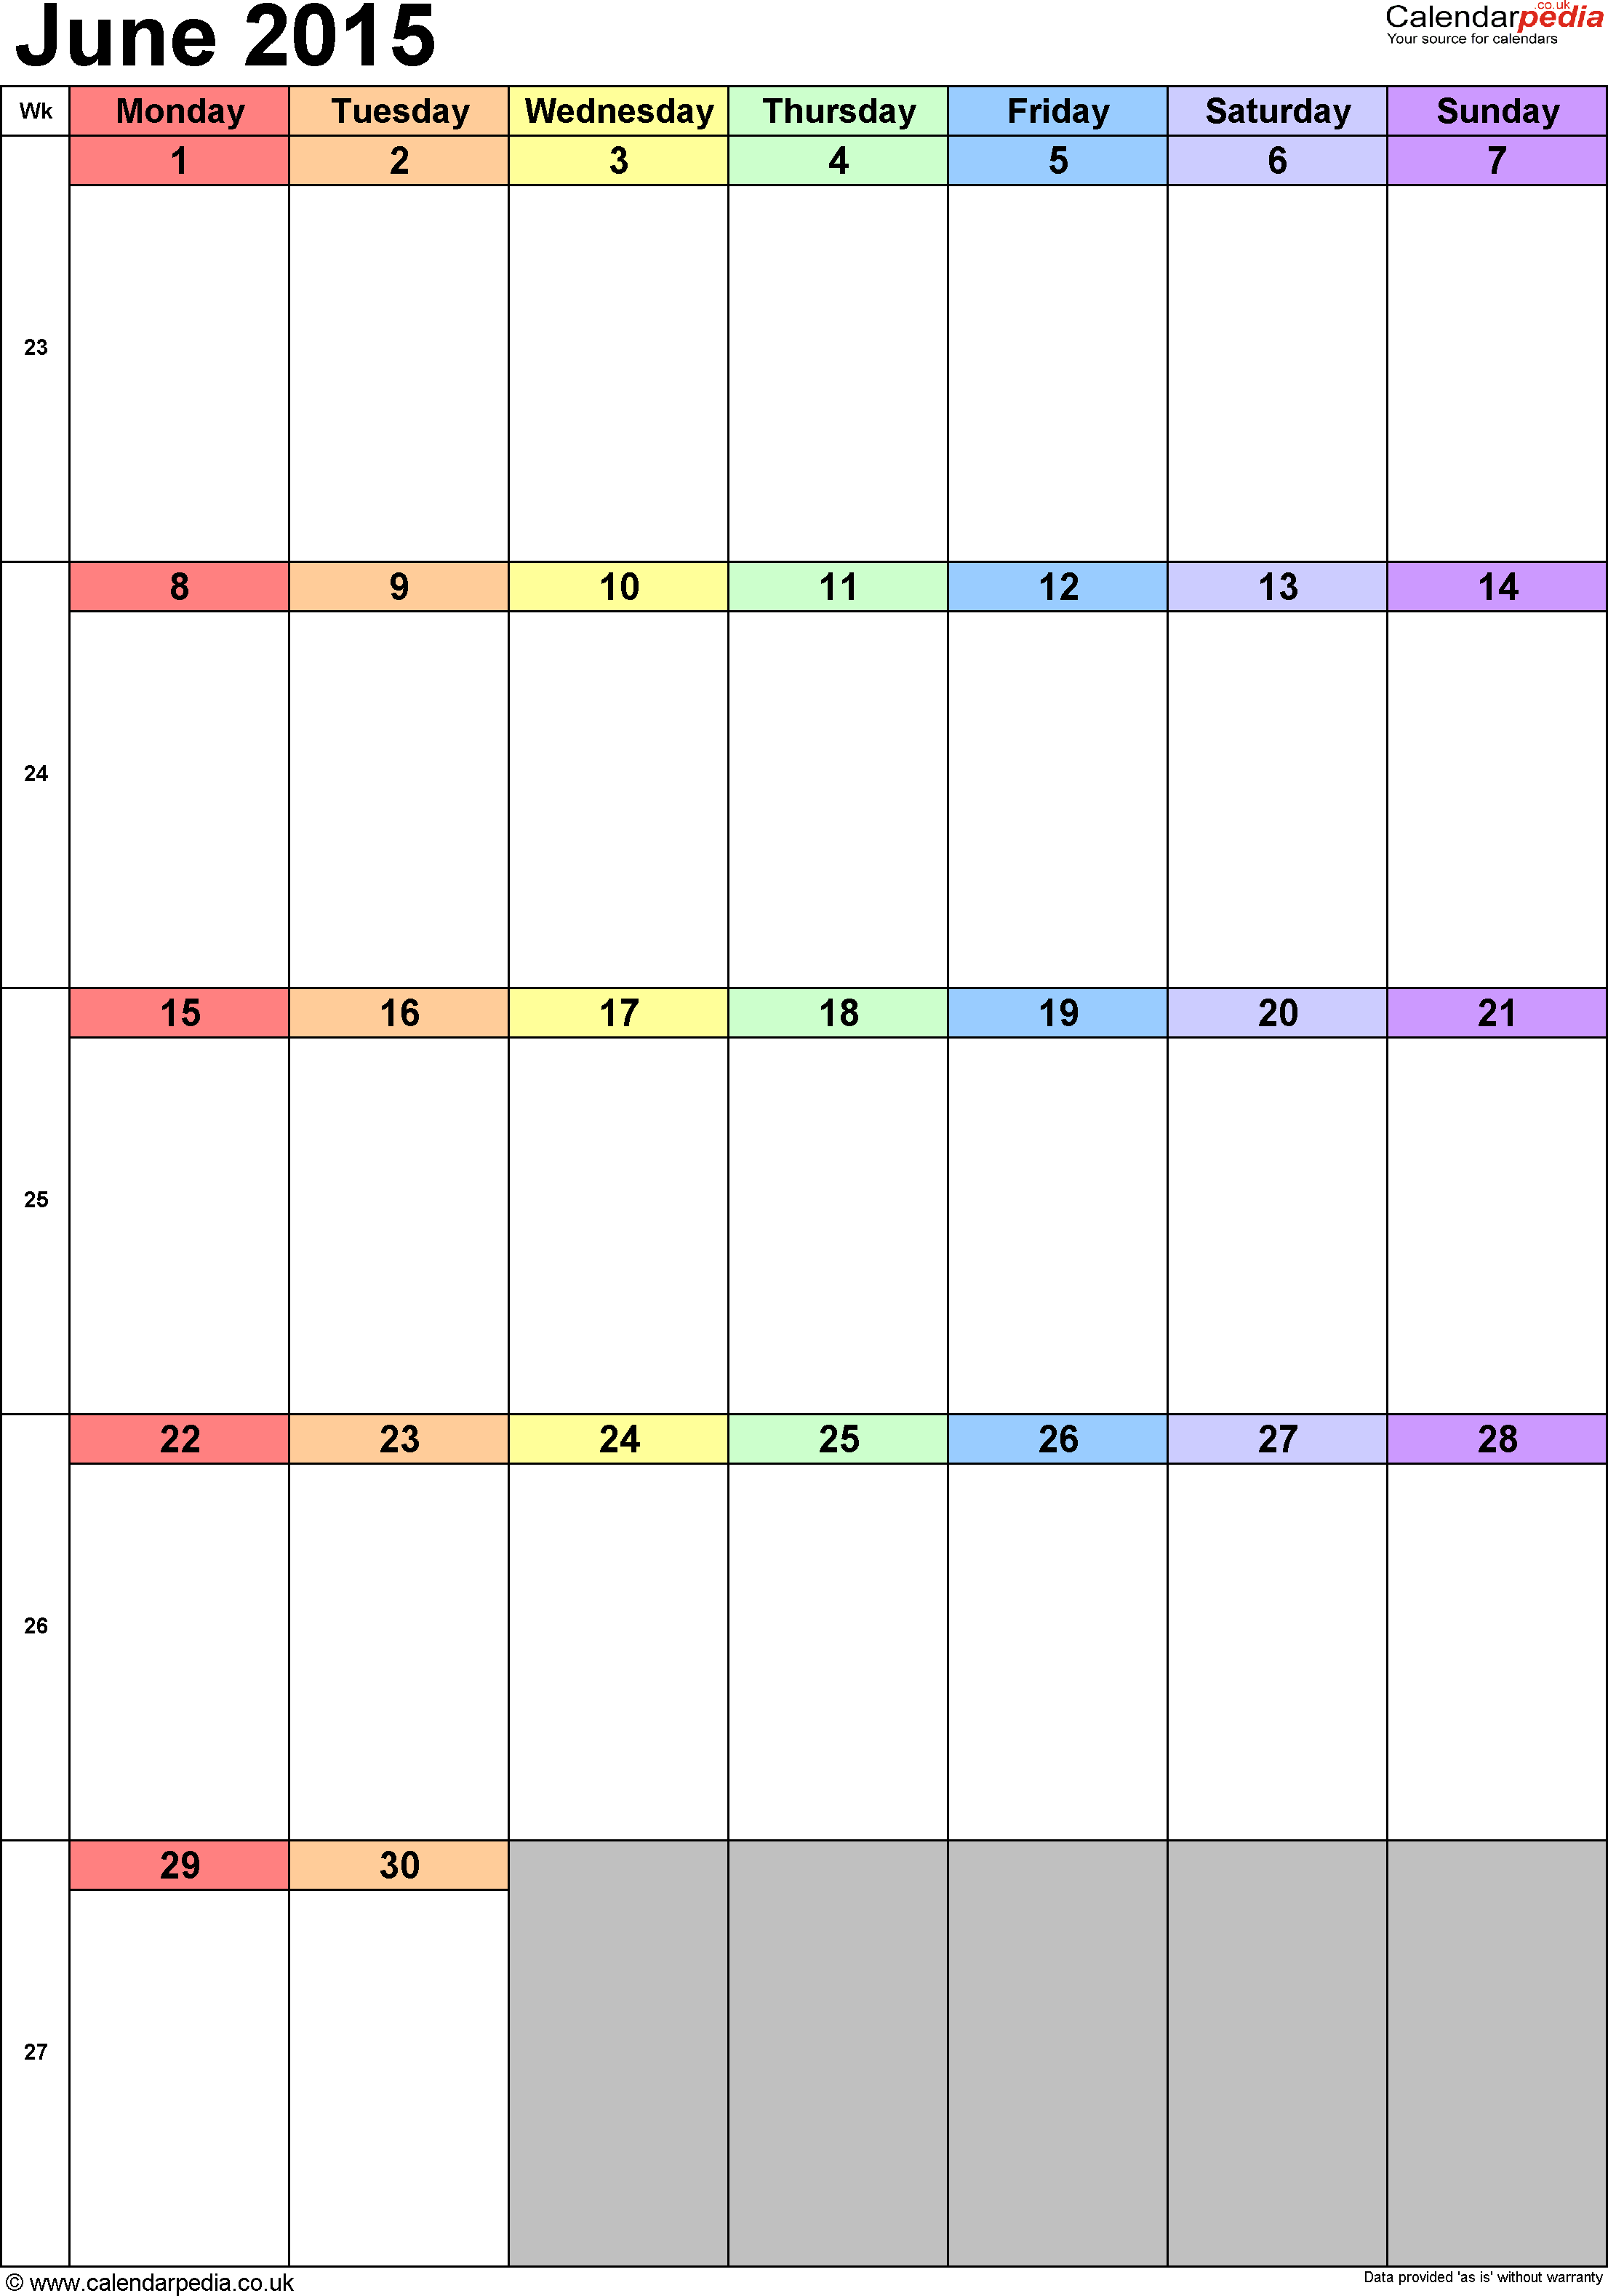 2015 June: Calendar June 2015 UK, Bank Holidays, Excel/PDF/Word Templates